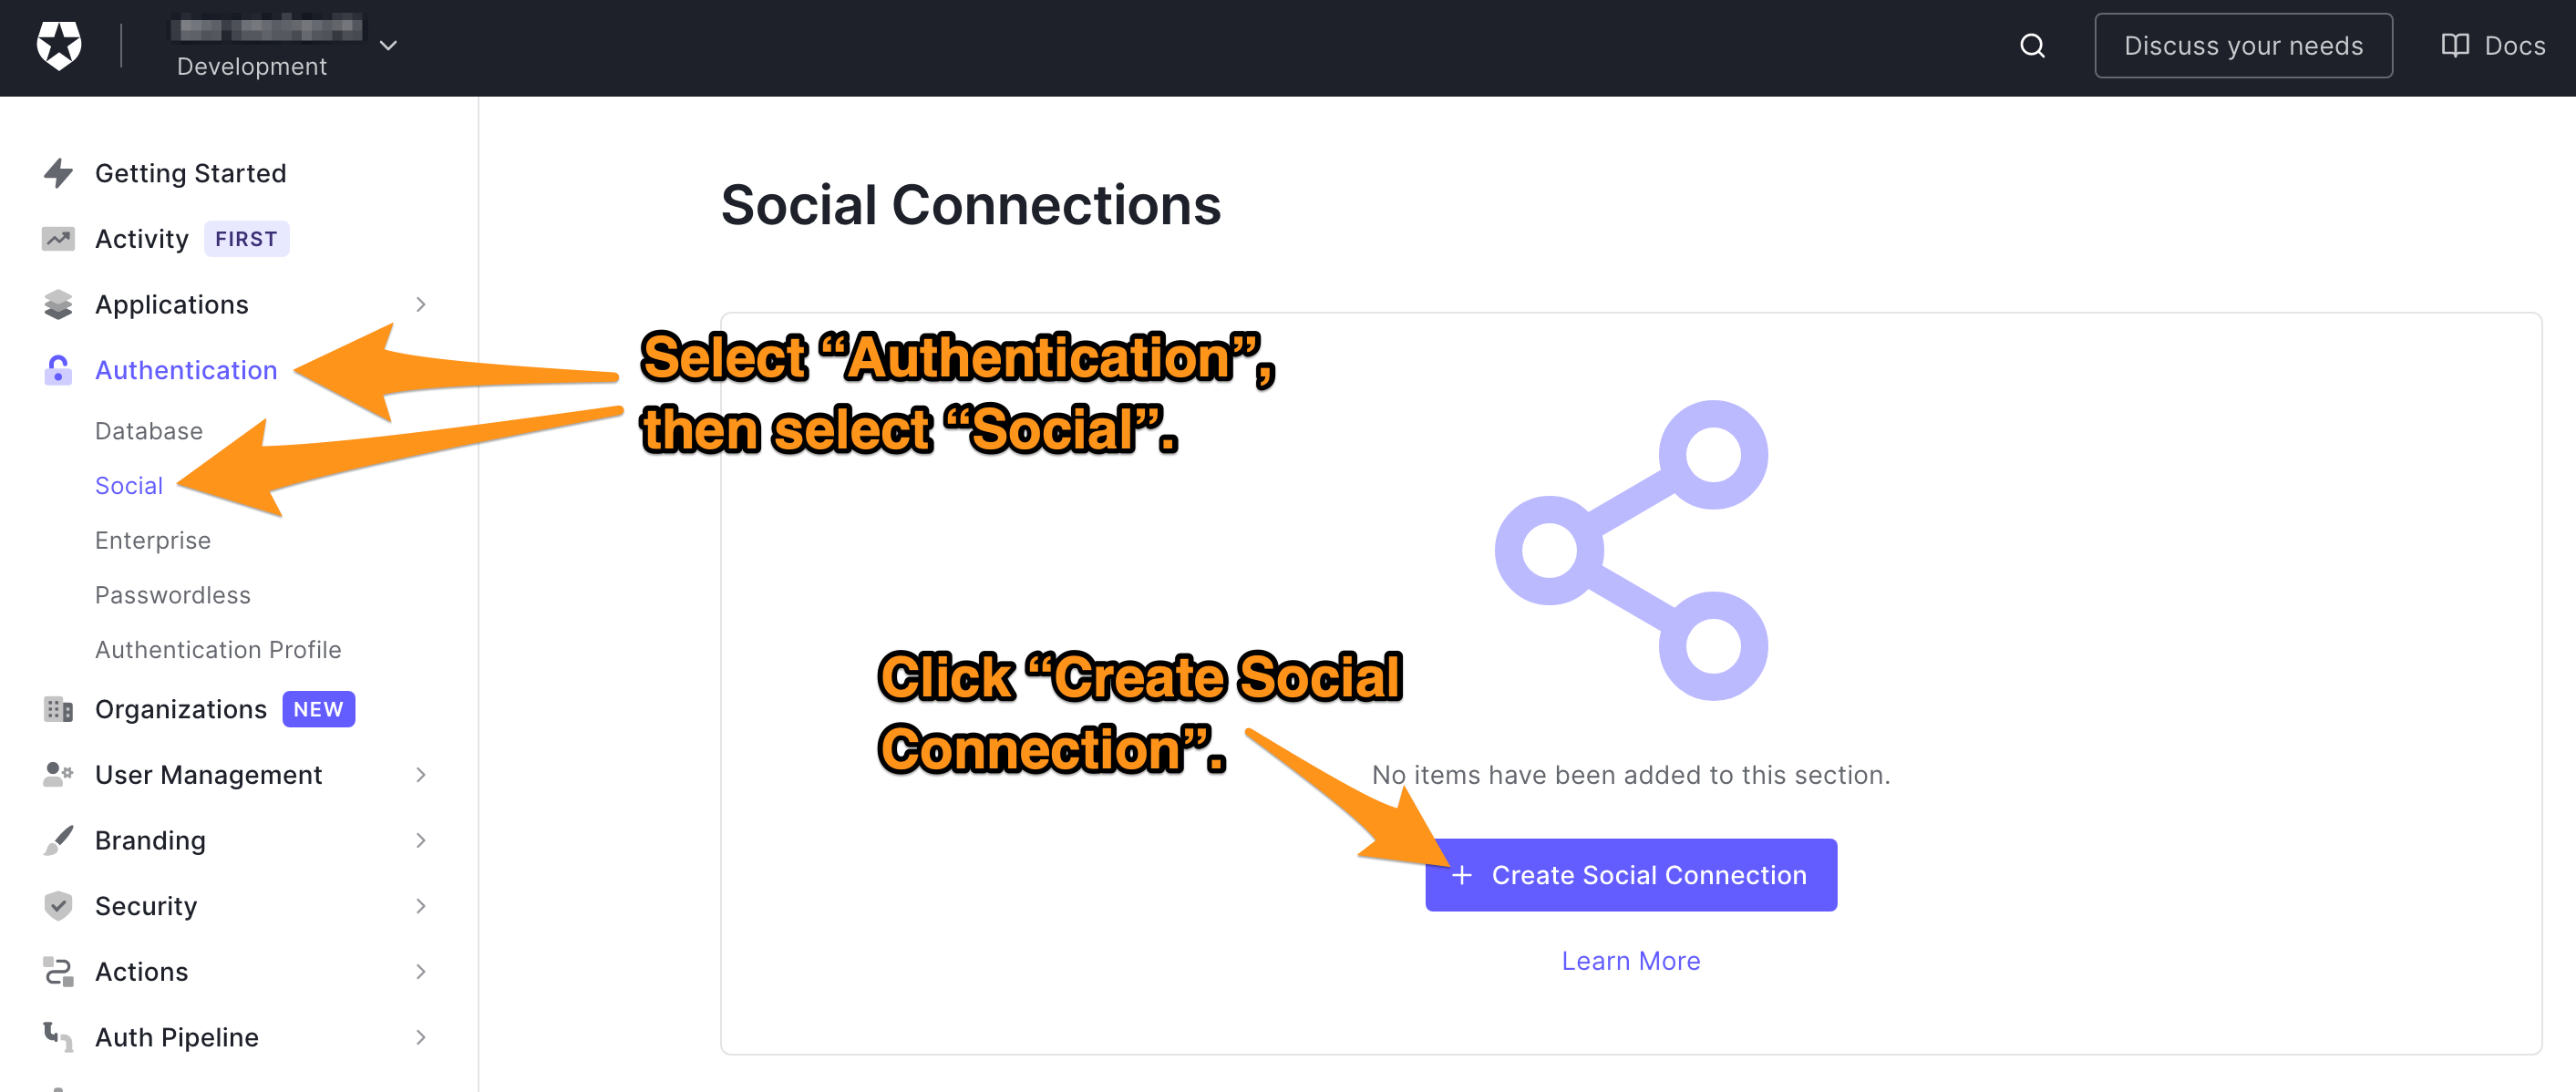 The steps to create a new social connection in Auth0